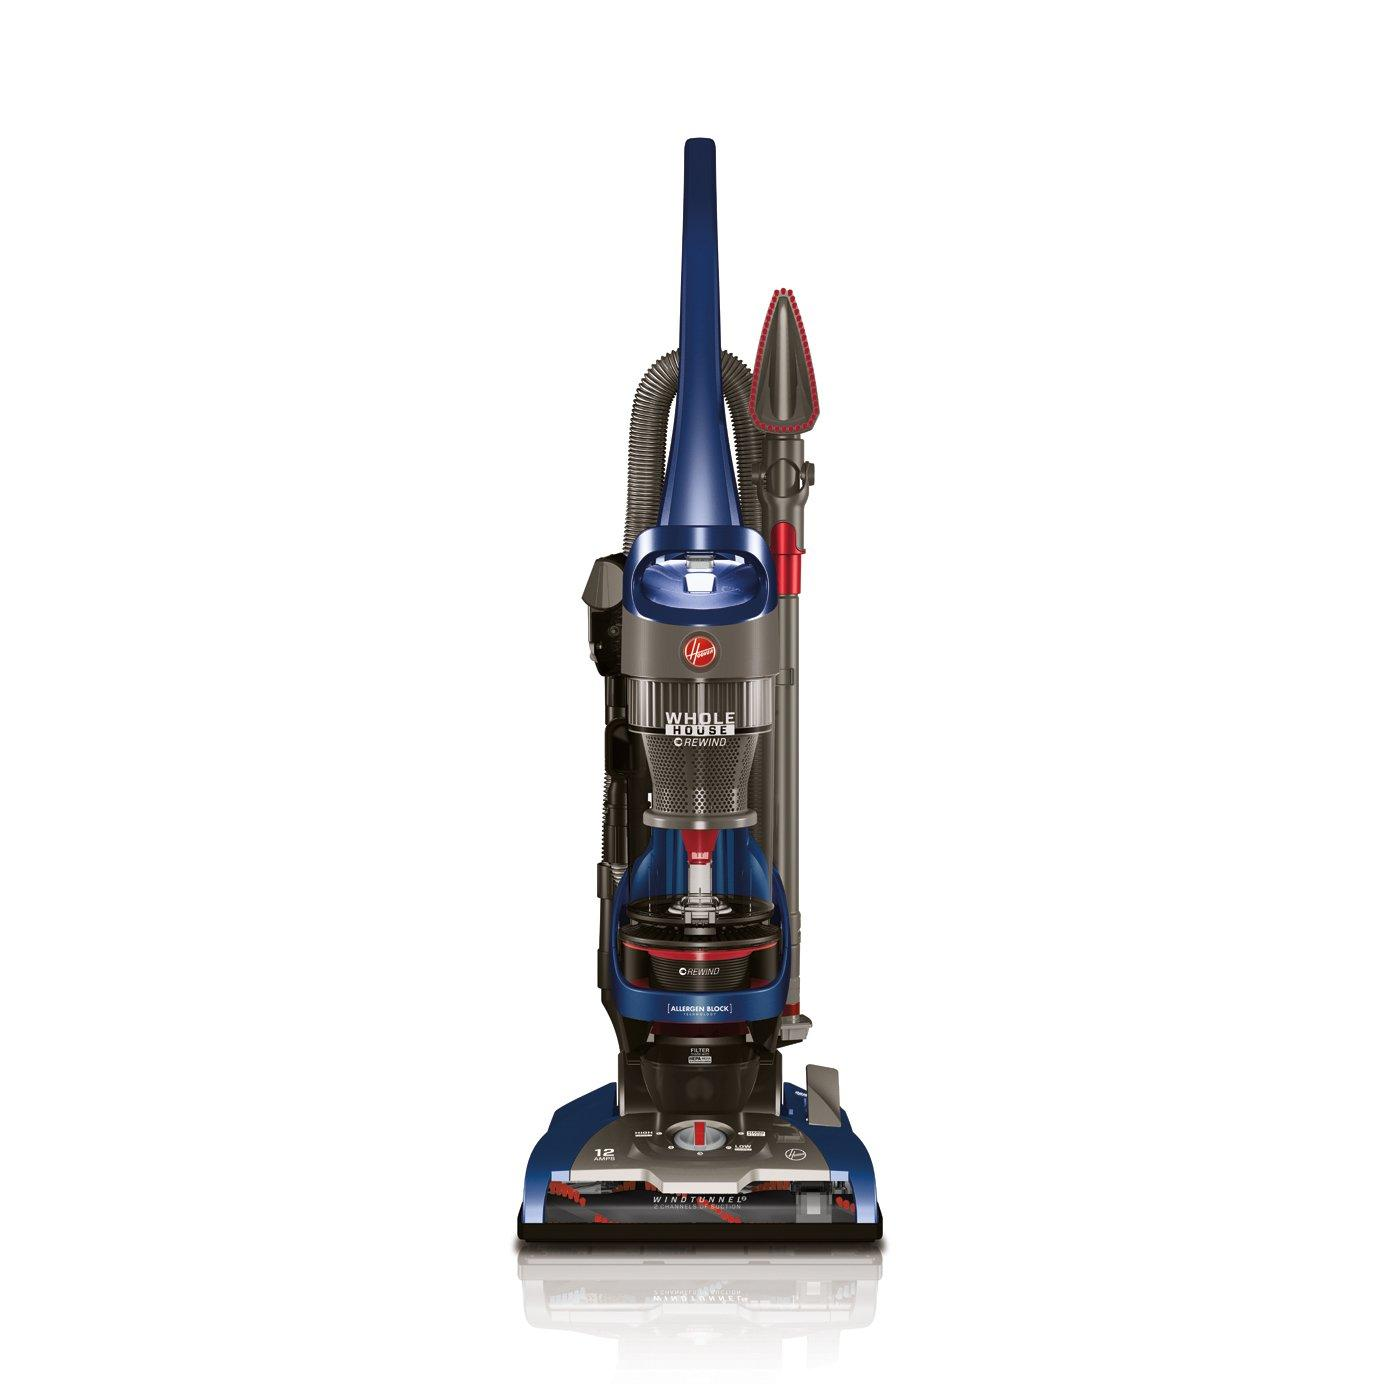 Garage Hoover Vacuum Details About Hoover Whole House Rewind Bagless Upright Vacuum Cleaner Uh71250